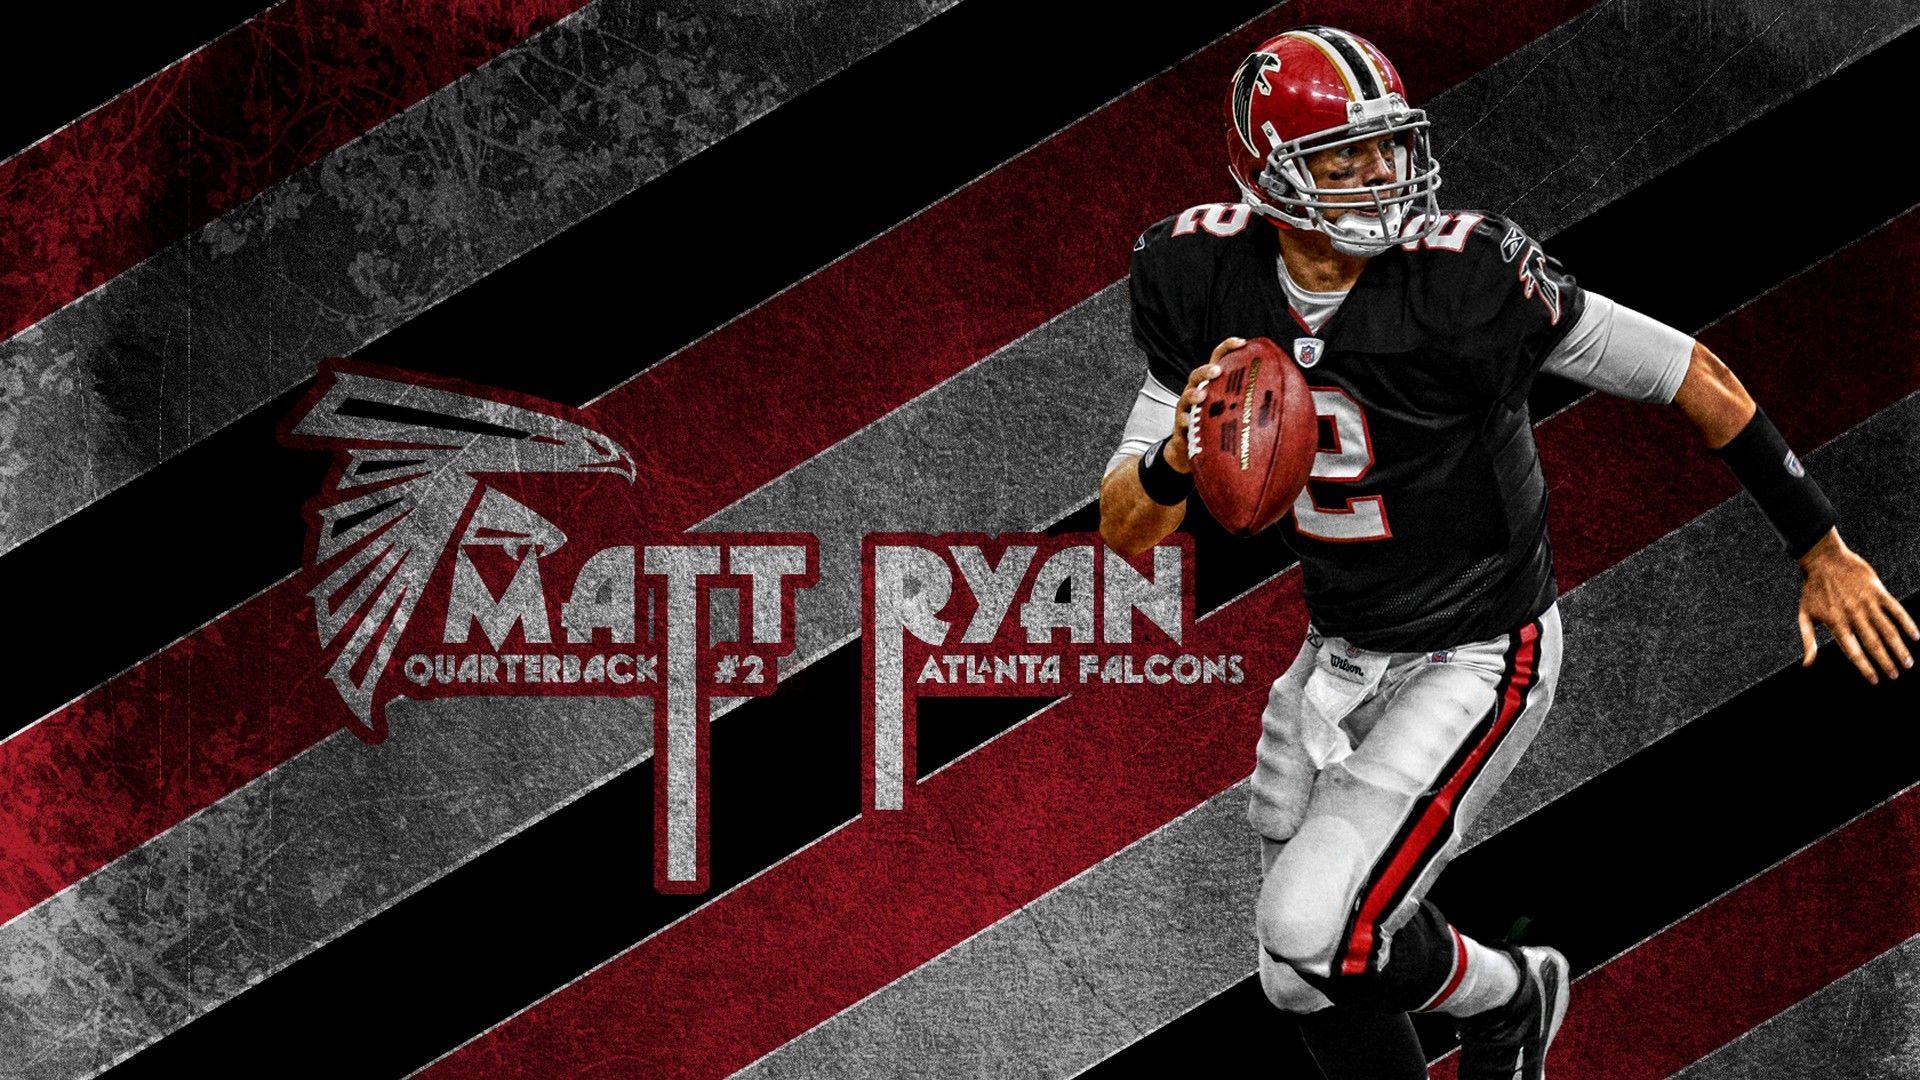 Nfl Wallpapers Nfl Football Wallpaper Atlanta Falcons Wallpaper Football Wallpaper